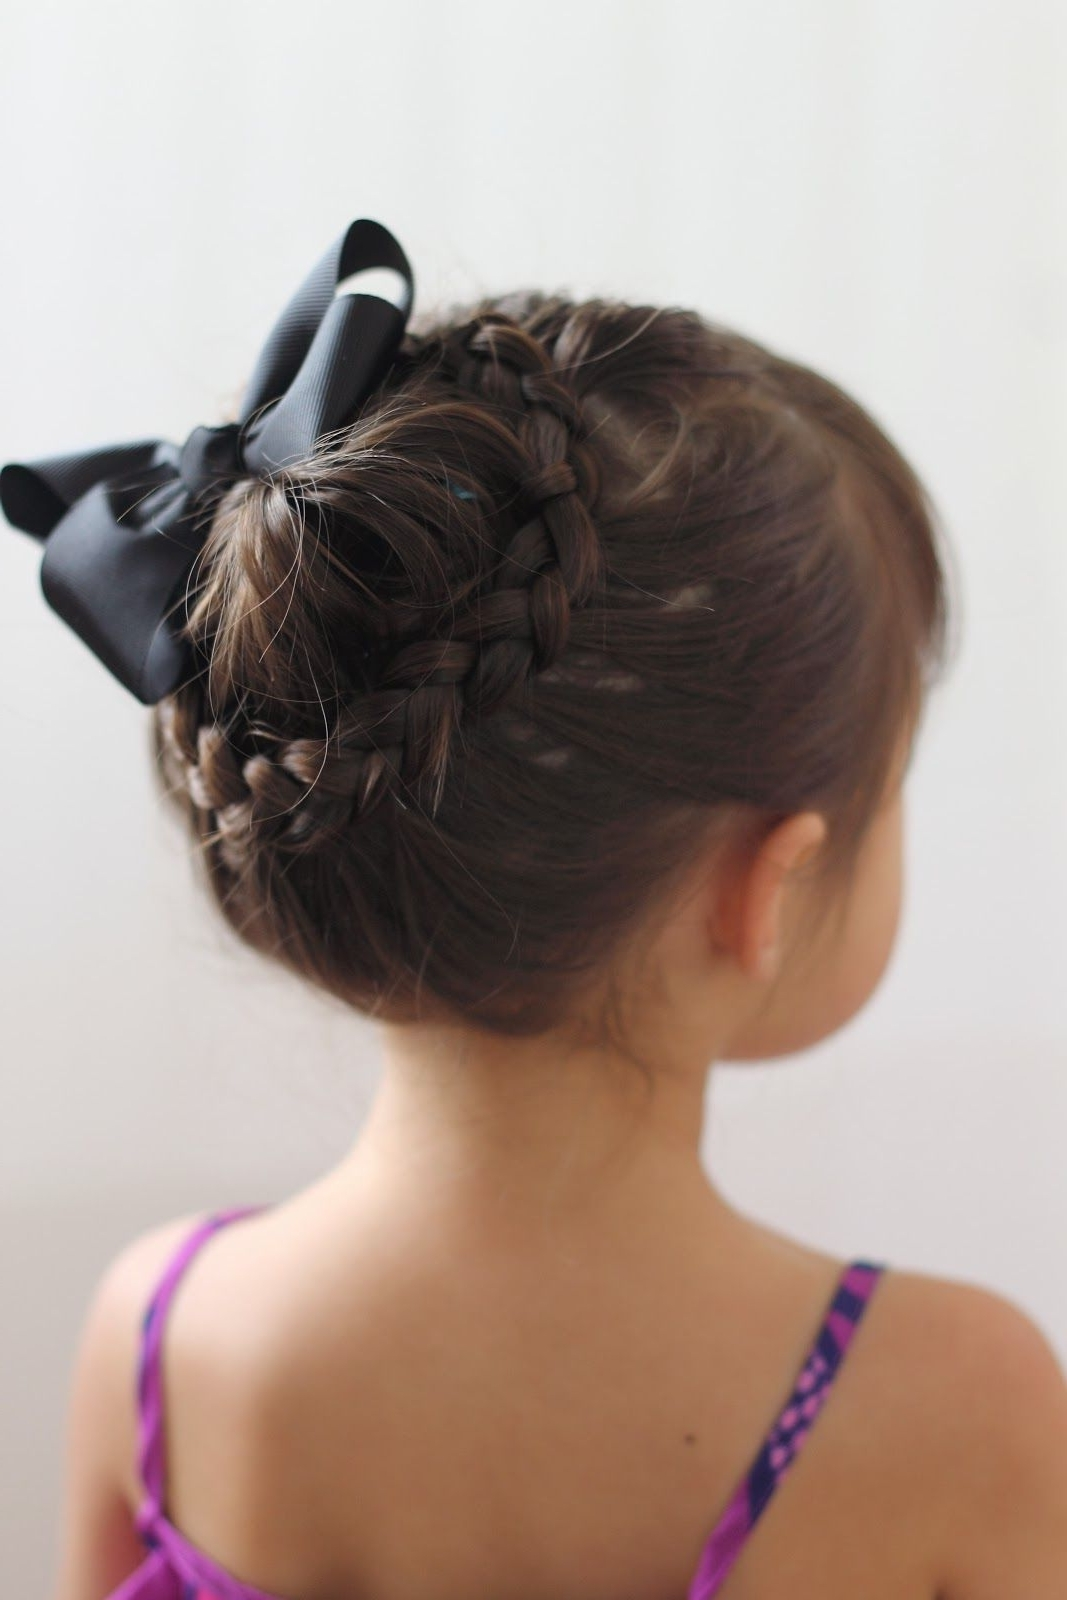 Most Current Dutch Inspired Pony Hairstyles Within 16 Toddler Hair Styles To Mix Up The Pony Tail And Simple Braids (View 14 of 20)